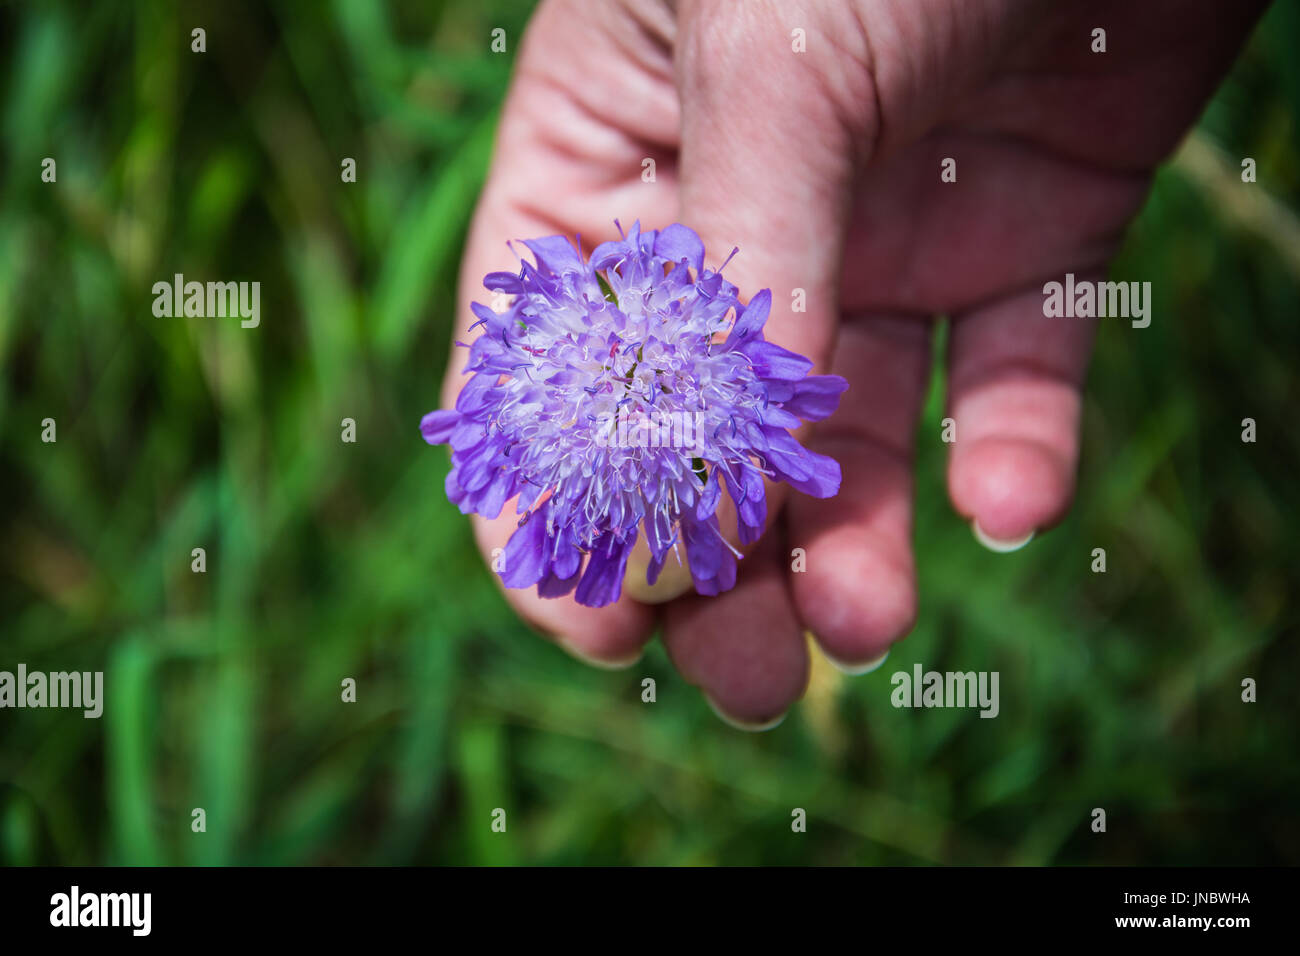 A wild Devil's-bit Scabious (Succisa pratensis) at the opened inflorescence stage being examined by a botanist on Wenlock Edge, Shropshire, UK. - Stock Image